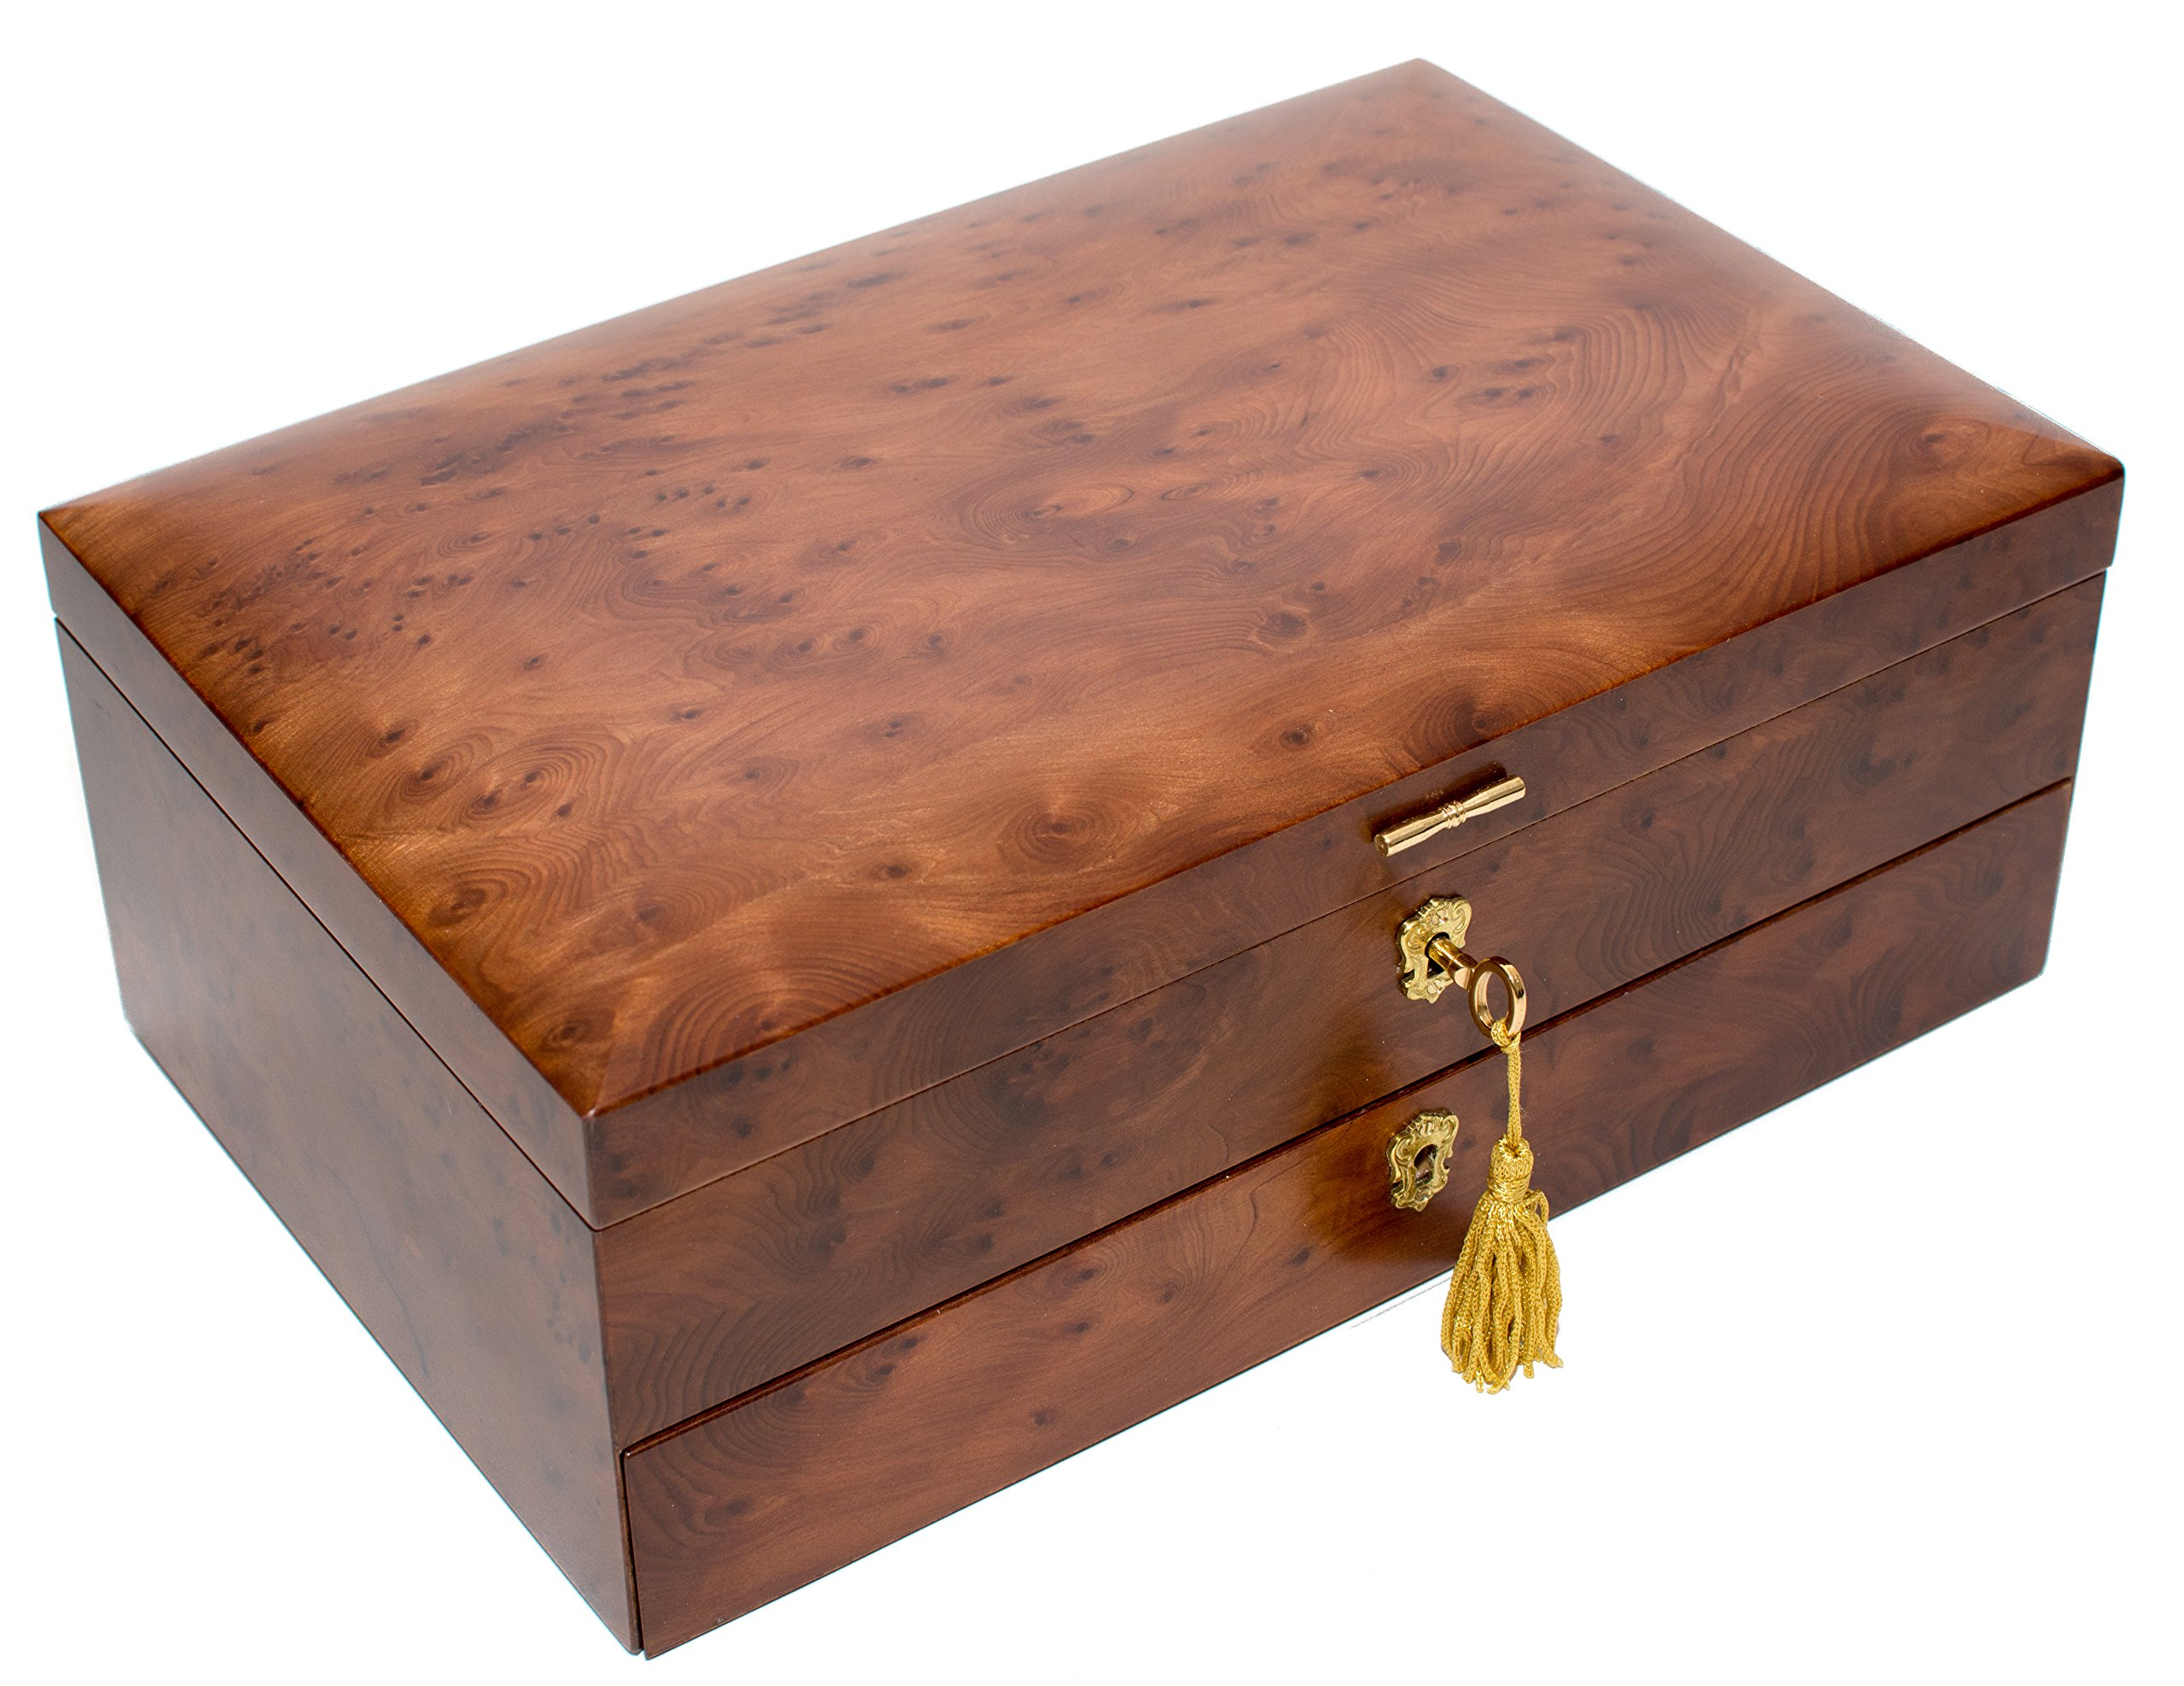 Bello Collezioni - Via Del Corso Luxury Briar Wood Men's/Women's Jewelry Box. Made in Italy